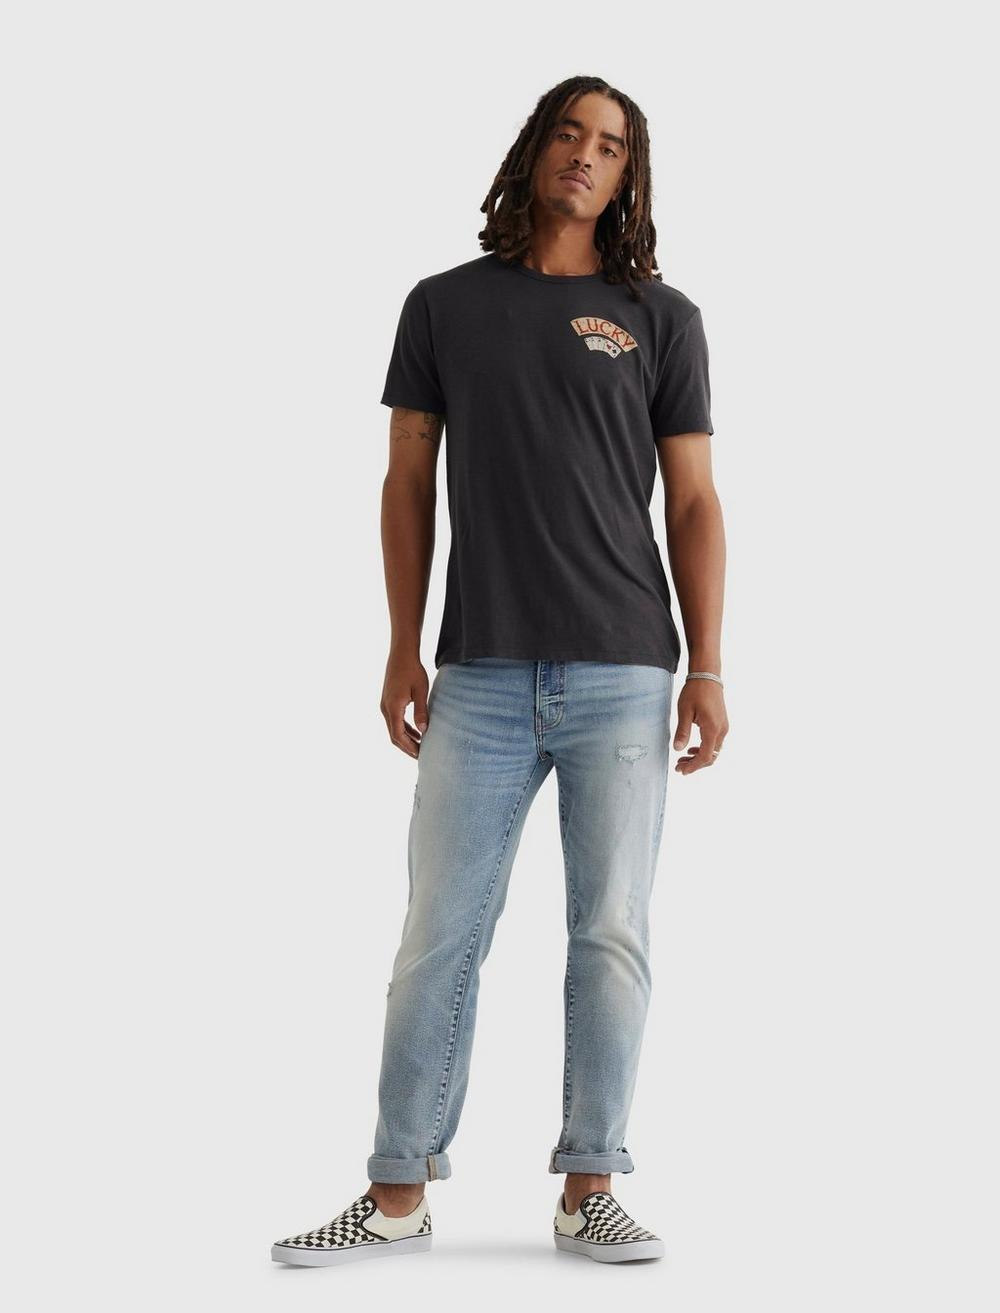 ACES OVER EIGHTS TEE, image 2